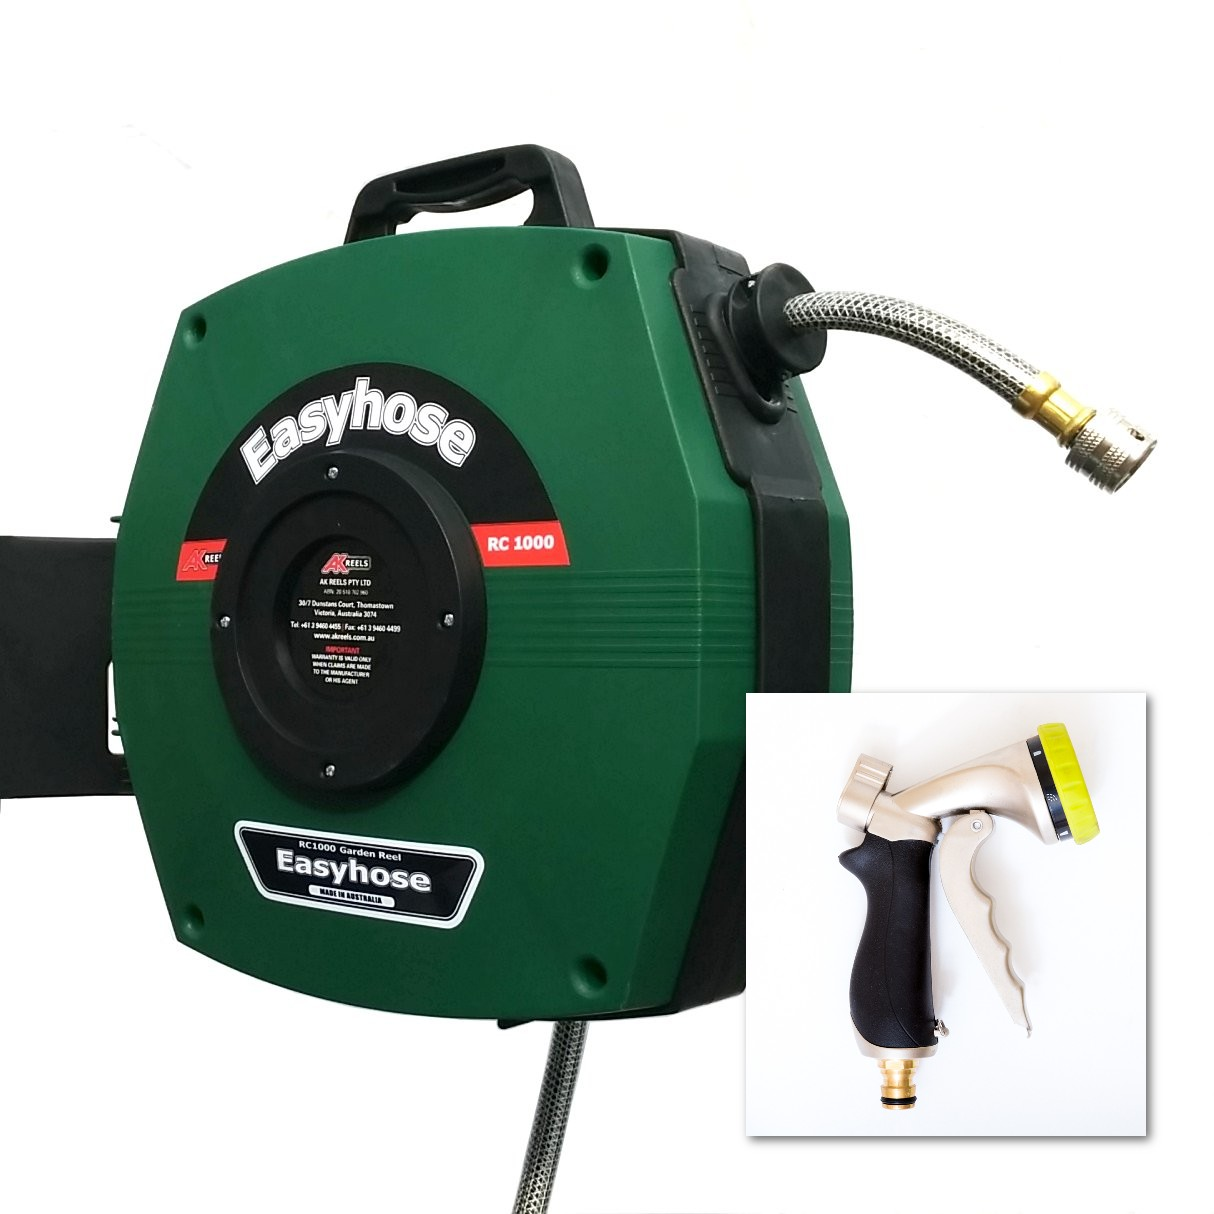 Easyhose Garden Hose Reel with Premium Trigger Spray